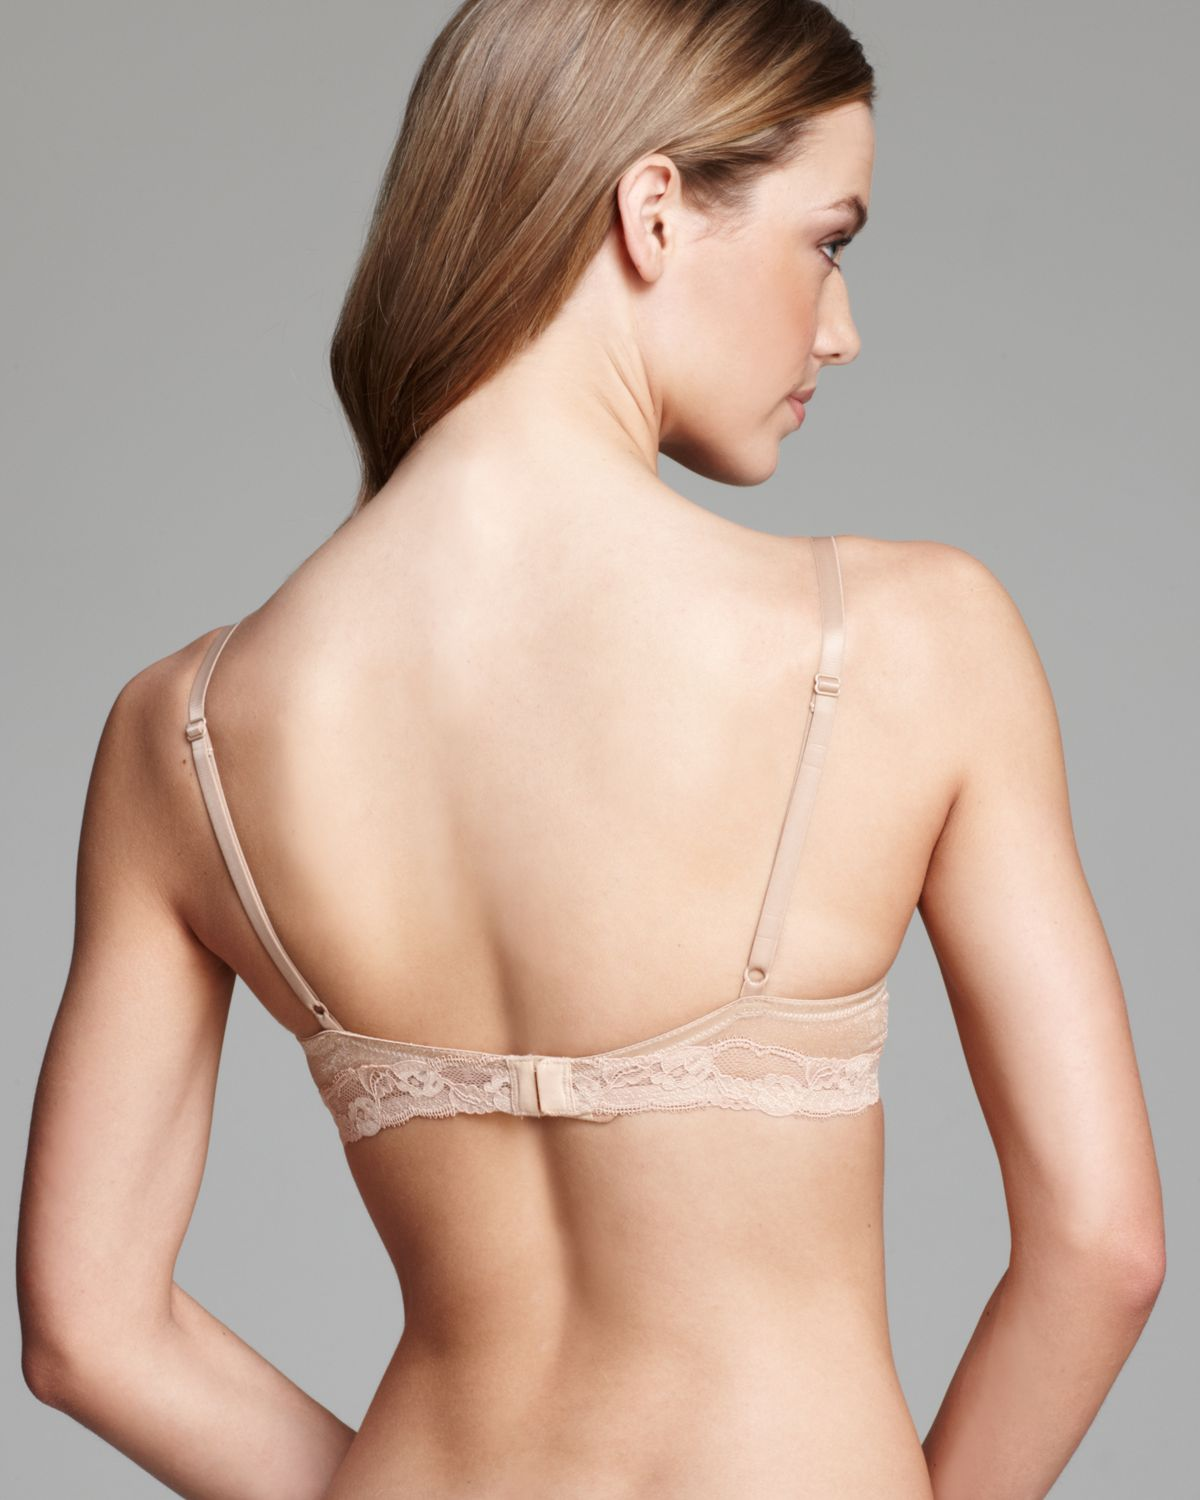 2e5baf5d15fe8 Lyst - Calvin Klein Bra Luster Unlined Underwire in Natural